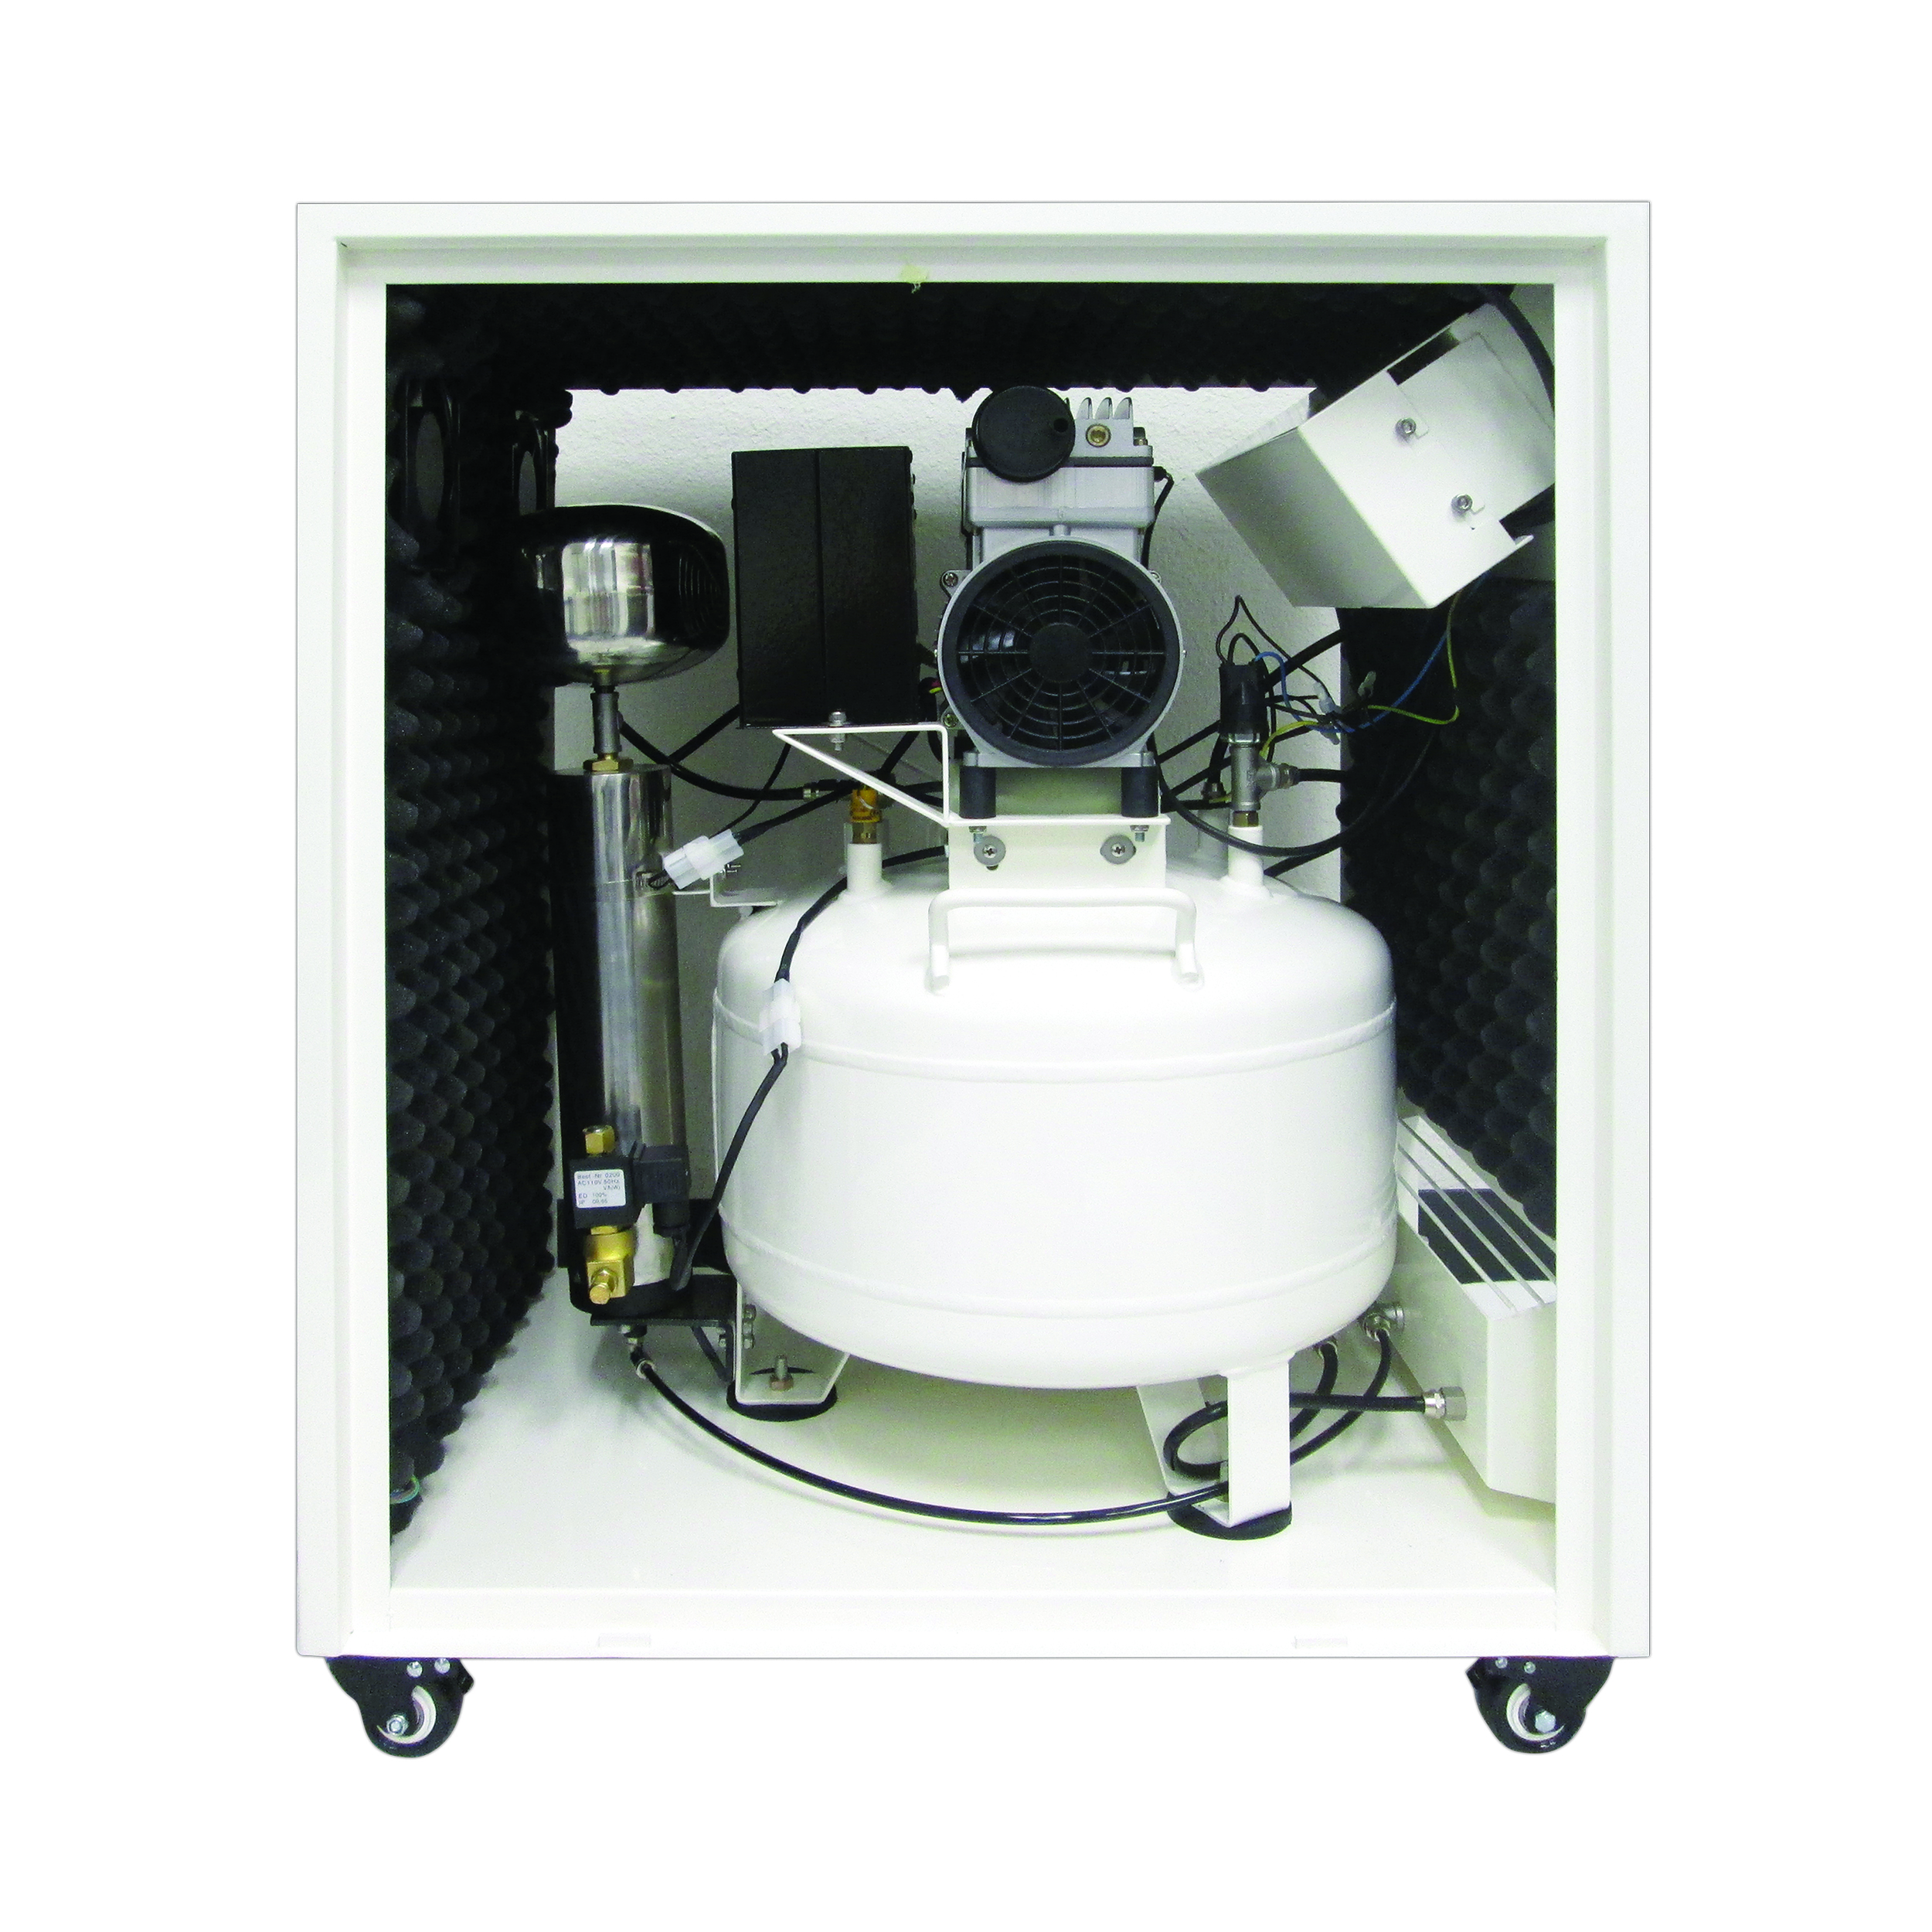 8010SPC Ultra Quiet 8 Gal. Air Compressor in Sound Proof Cabinet